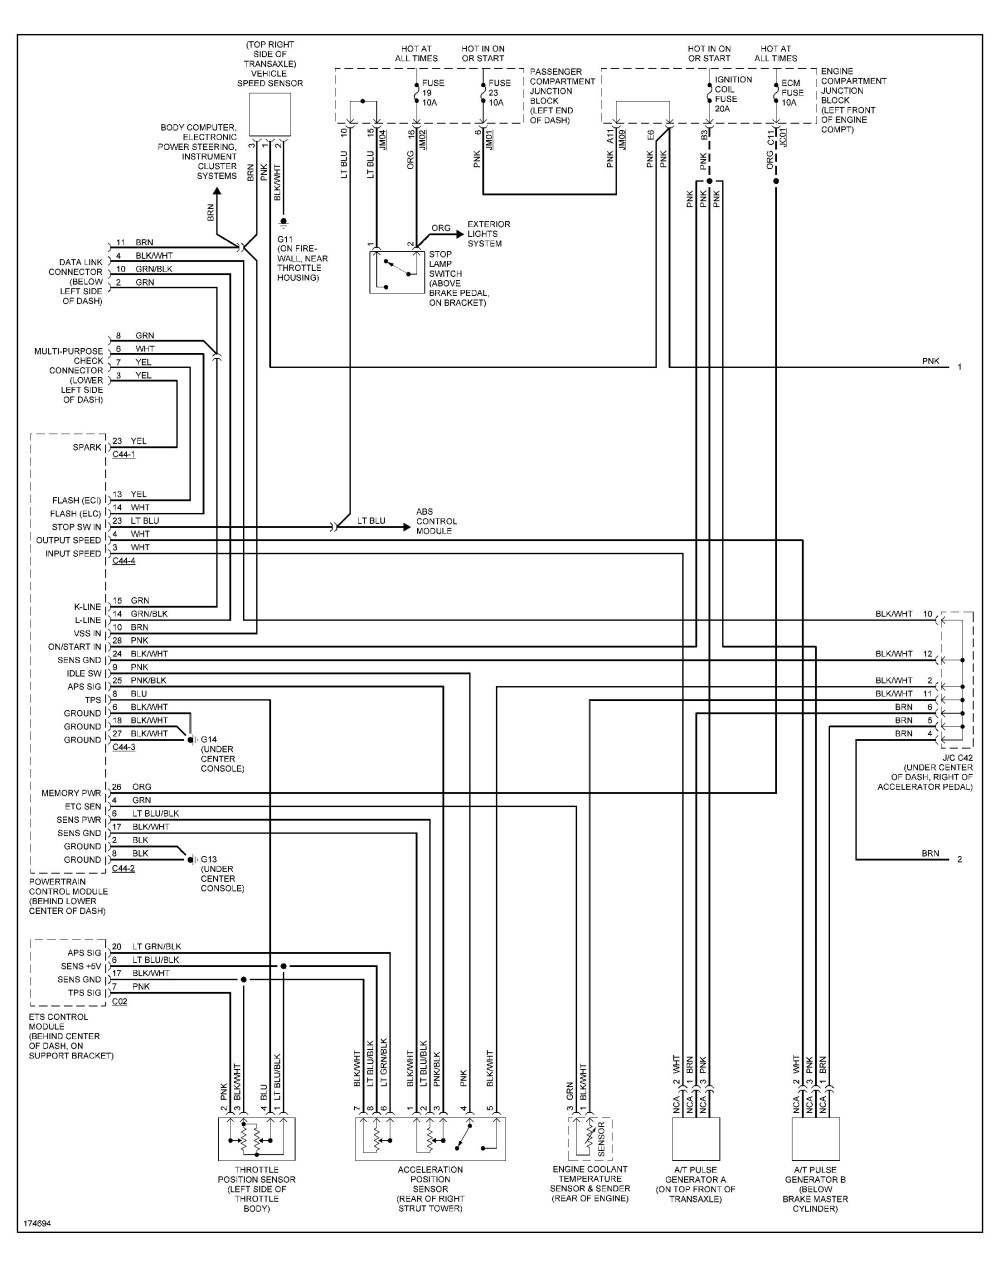 medium resolution of 3 3 2008 hyundai santa fe engine diagram wiring diagram used santa fe 2003 wiring diagram reverse lights